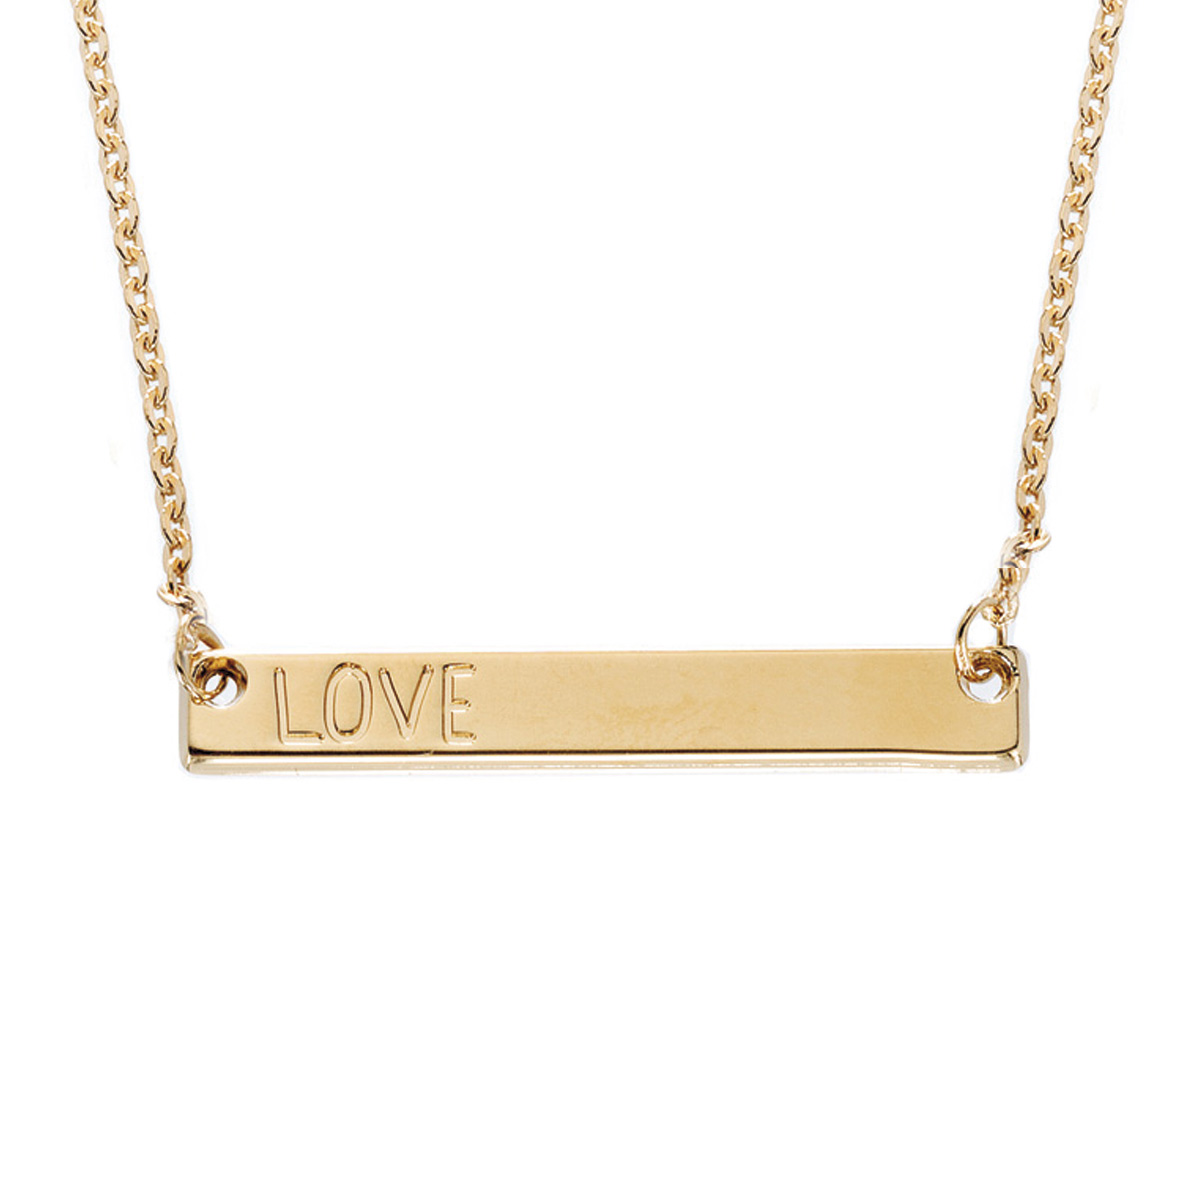 Collier plaque or love bijoux LEONE